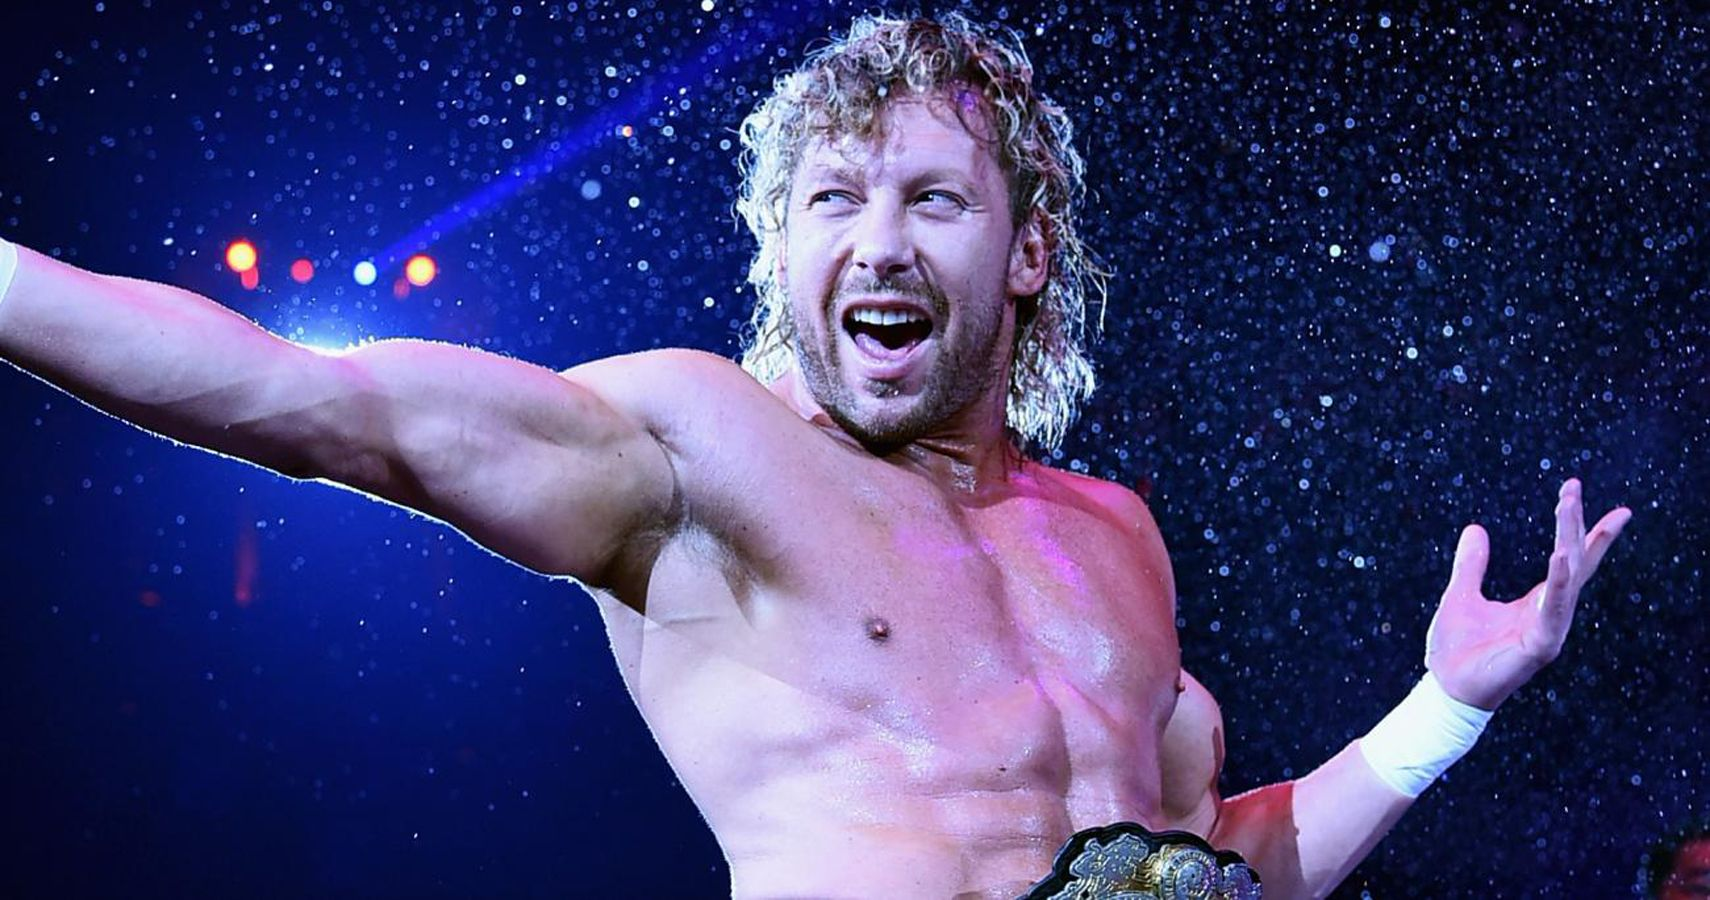 kenny omega, wwe, aew, njpw, all elite wrestling, new japan, new japan pro wrestling, tokyo dome, double or nothing